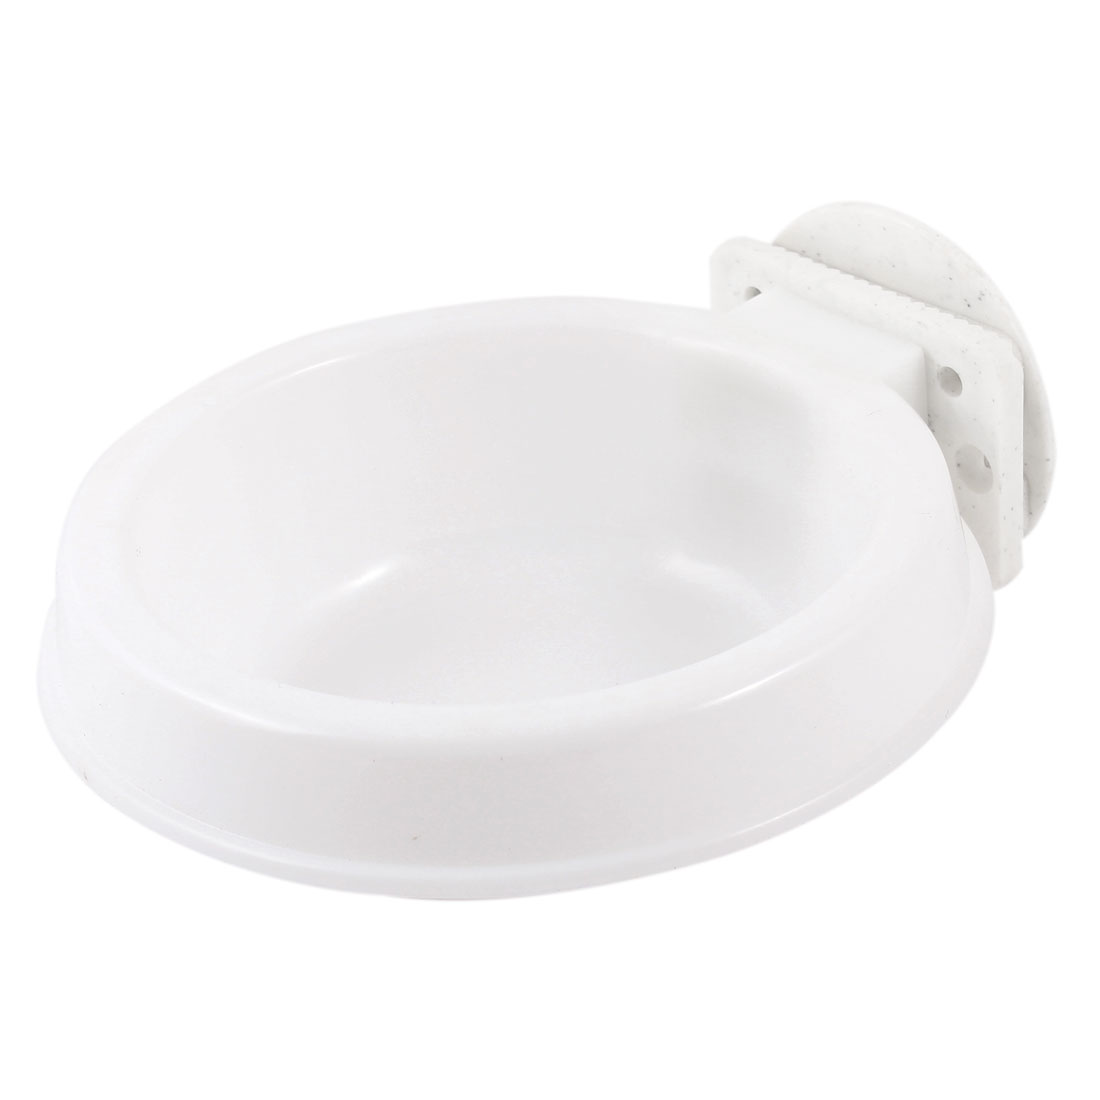 10.5cm Dia 4cm Depth Puppy Dog Cat Pet Outdoor Cage Fixed Plastic Feed Bowl Round Shape Dinner Food Water Feeder White